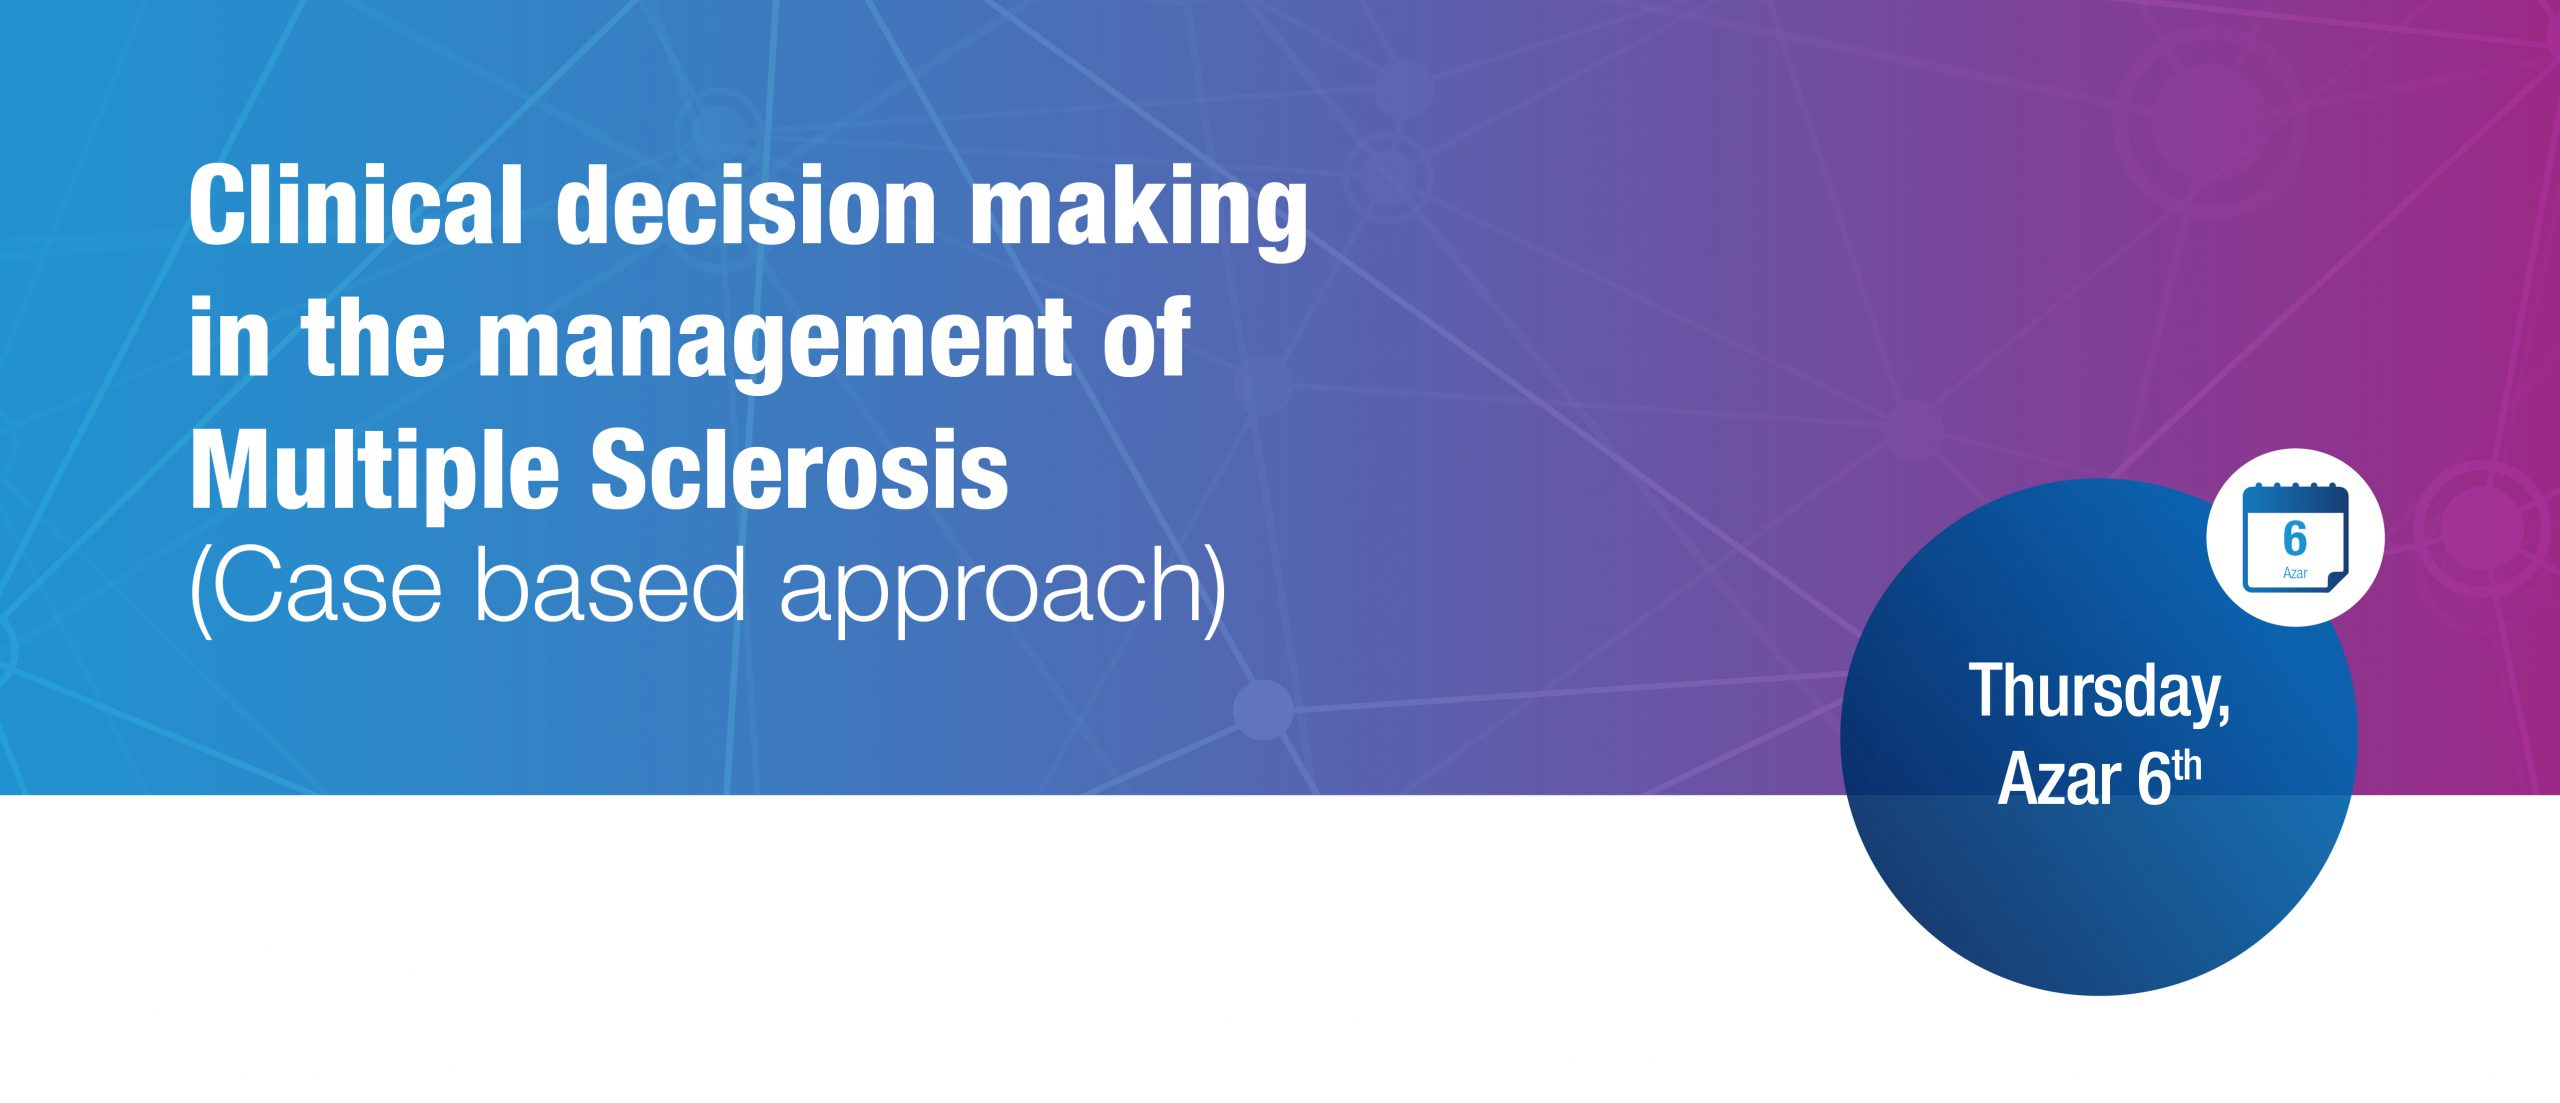 Clinical decision making in the management of Multiple Sclerosis